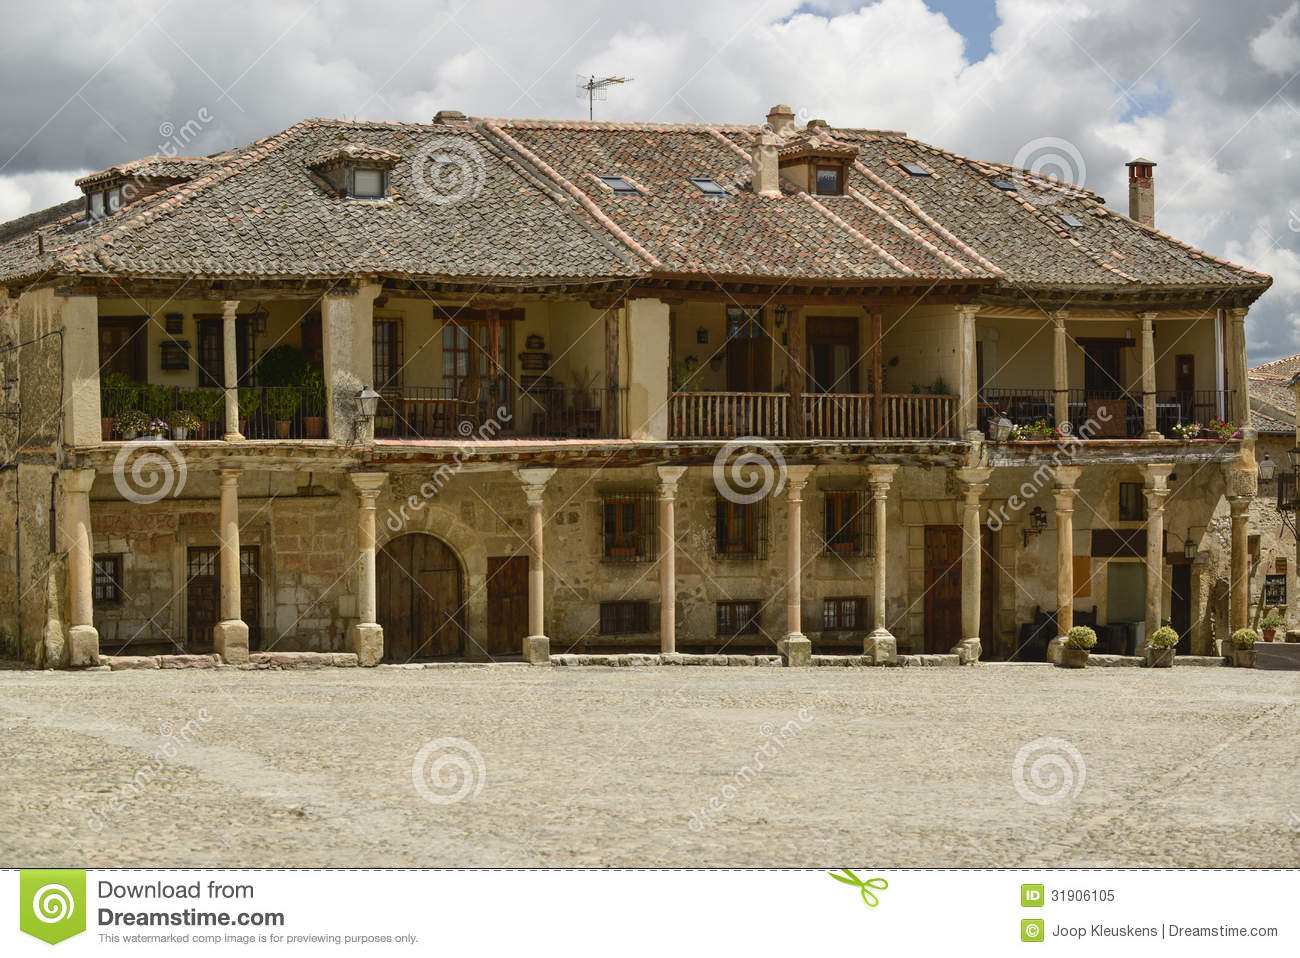 Old Houses With Balcony On Pillars Royalty Free Stock